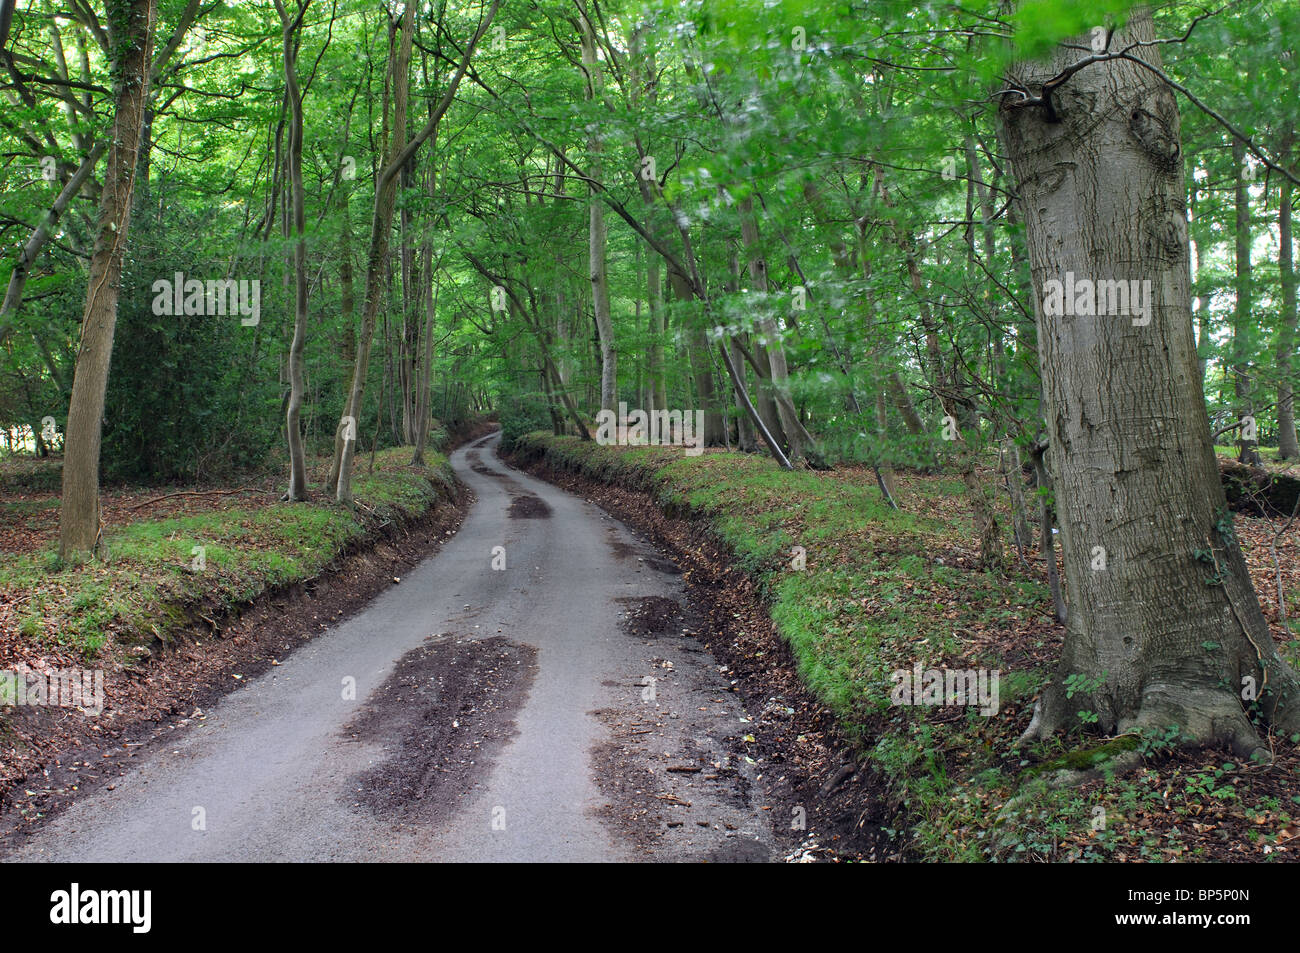 Tree-lined road in the Chilterns near Turville, Buckinghamshire, England, UK - Stock Image